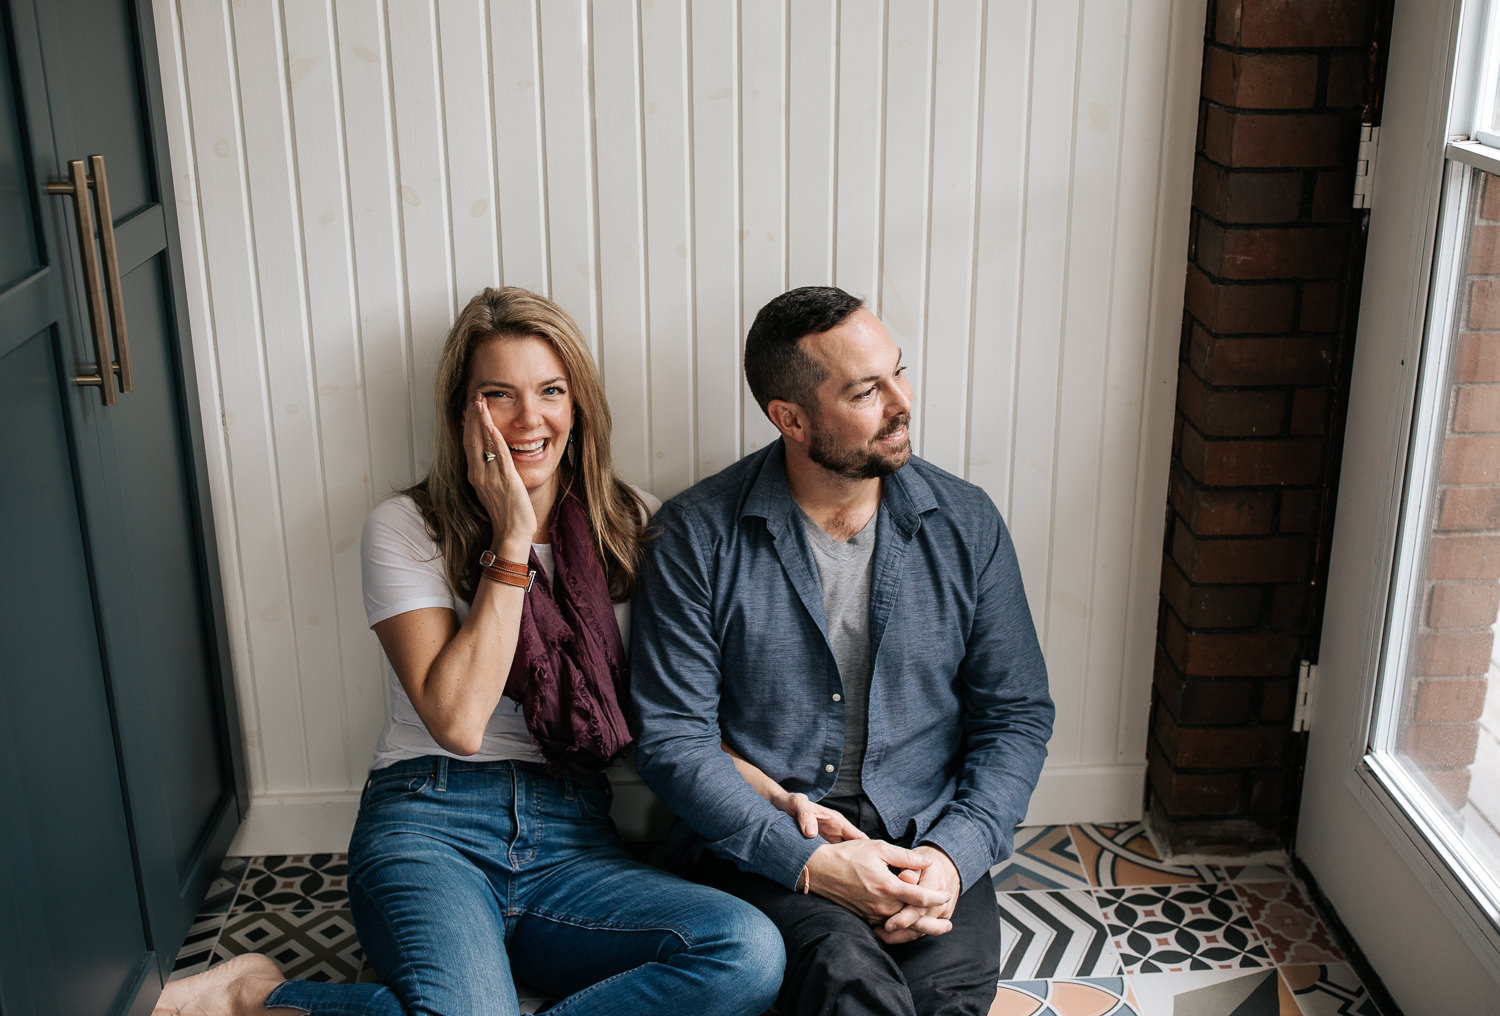 husband and wife sitting on ground of colourful tile, leaning against wall, arms linked, holding hands, man looking to side, woman's hand on cheek smiling at camera  -York Region Lifestyle Photos